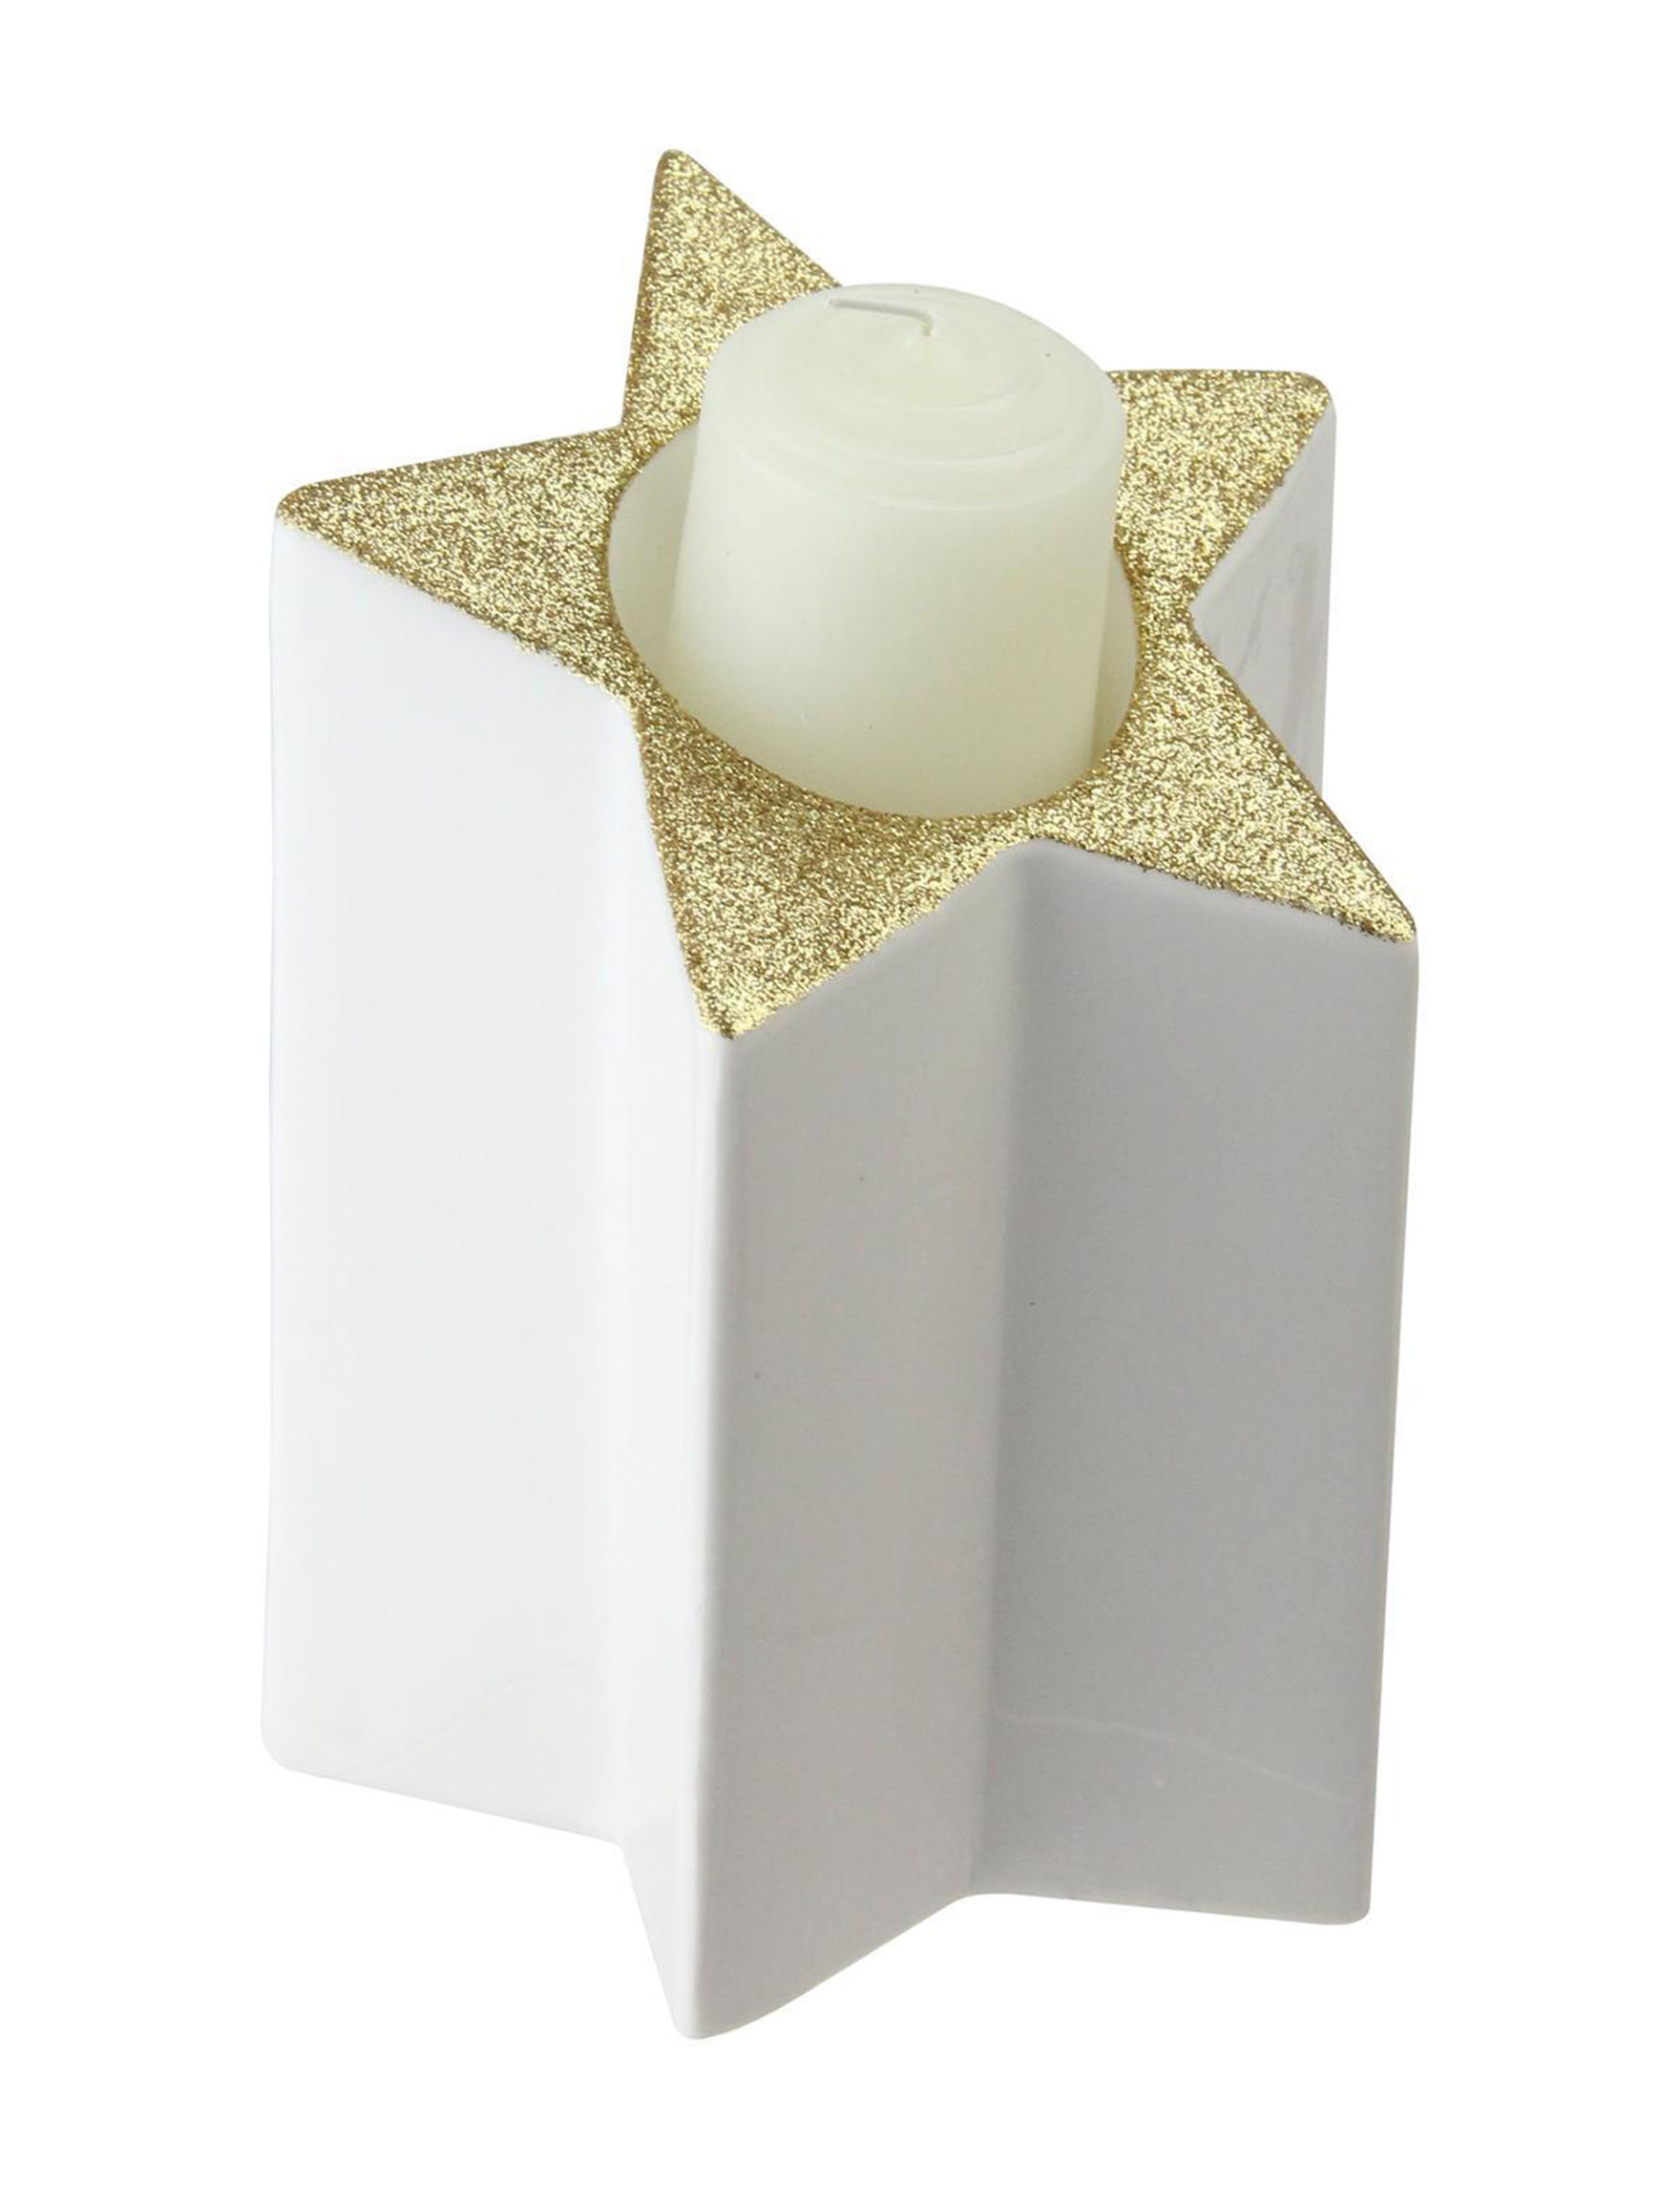 Northlight White / Gold Decorative Objects Candles & Diffusers Holiday Decor Home Accents